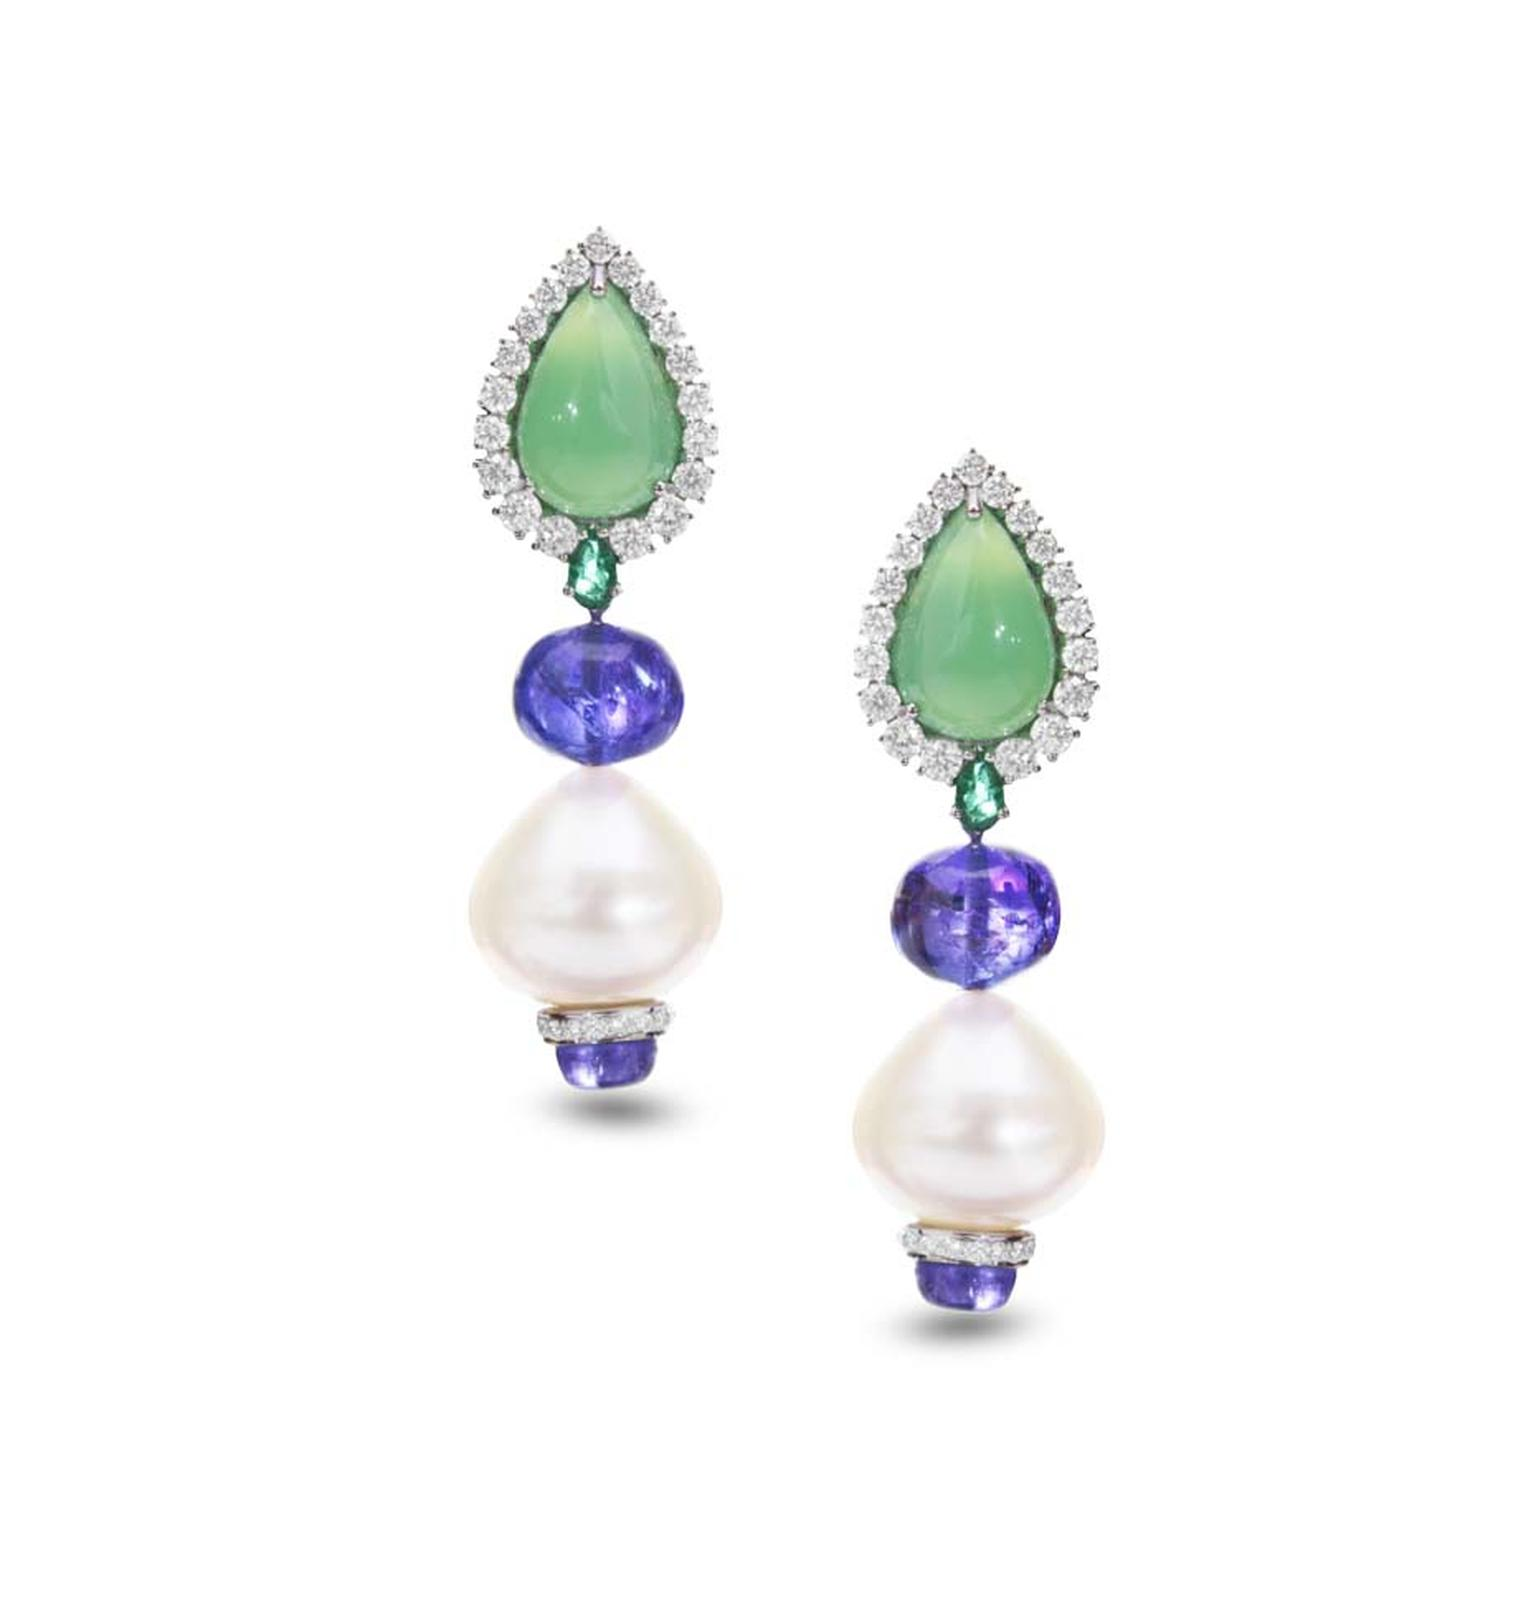 Farah Khan gold earrings featuring diamonds, emeralds, chrysoprase (10.63ct), tanzanites (24.78ct) and South Sea pearls (53.83ct).